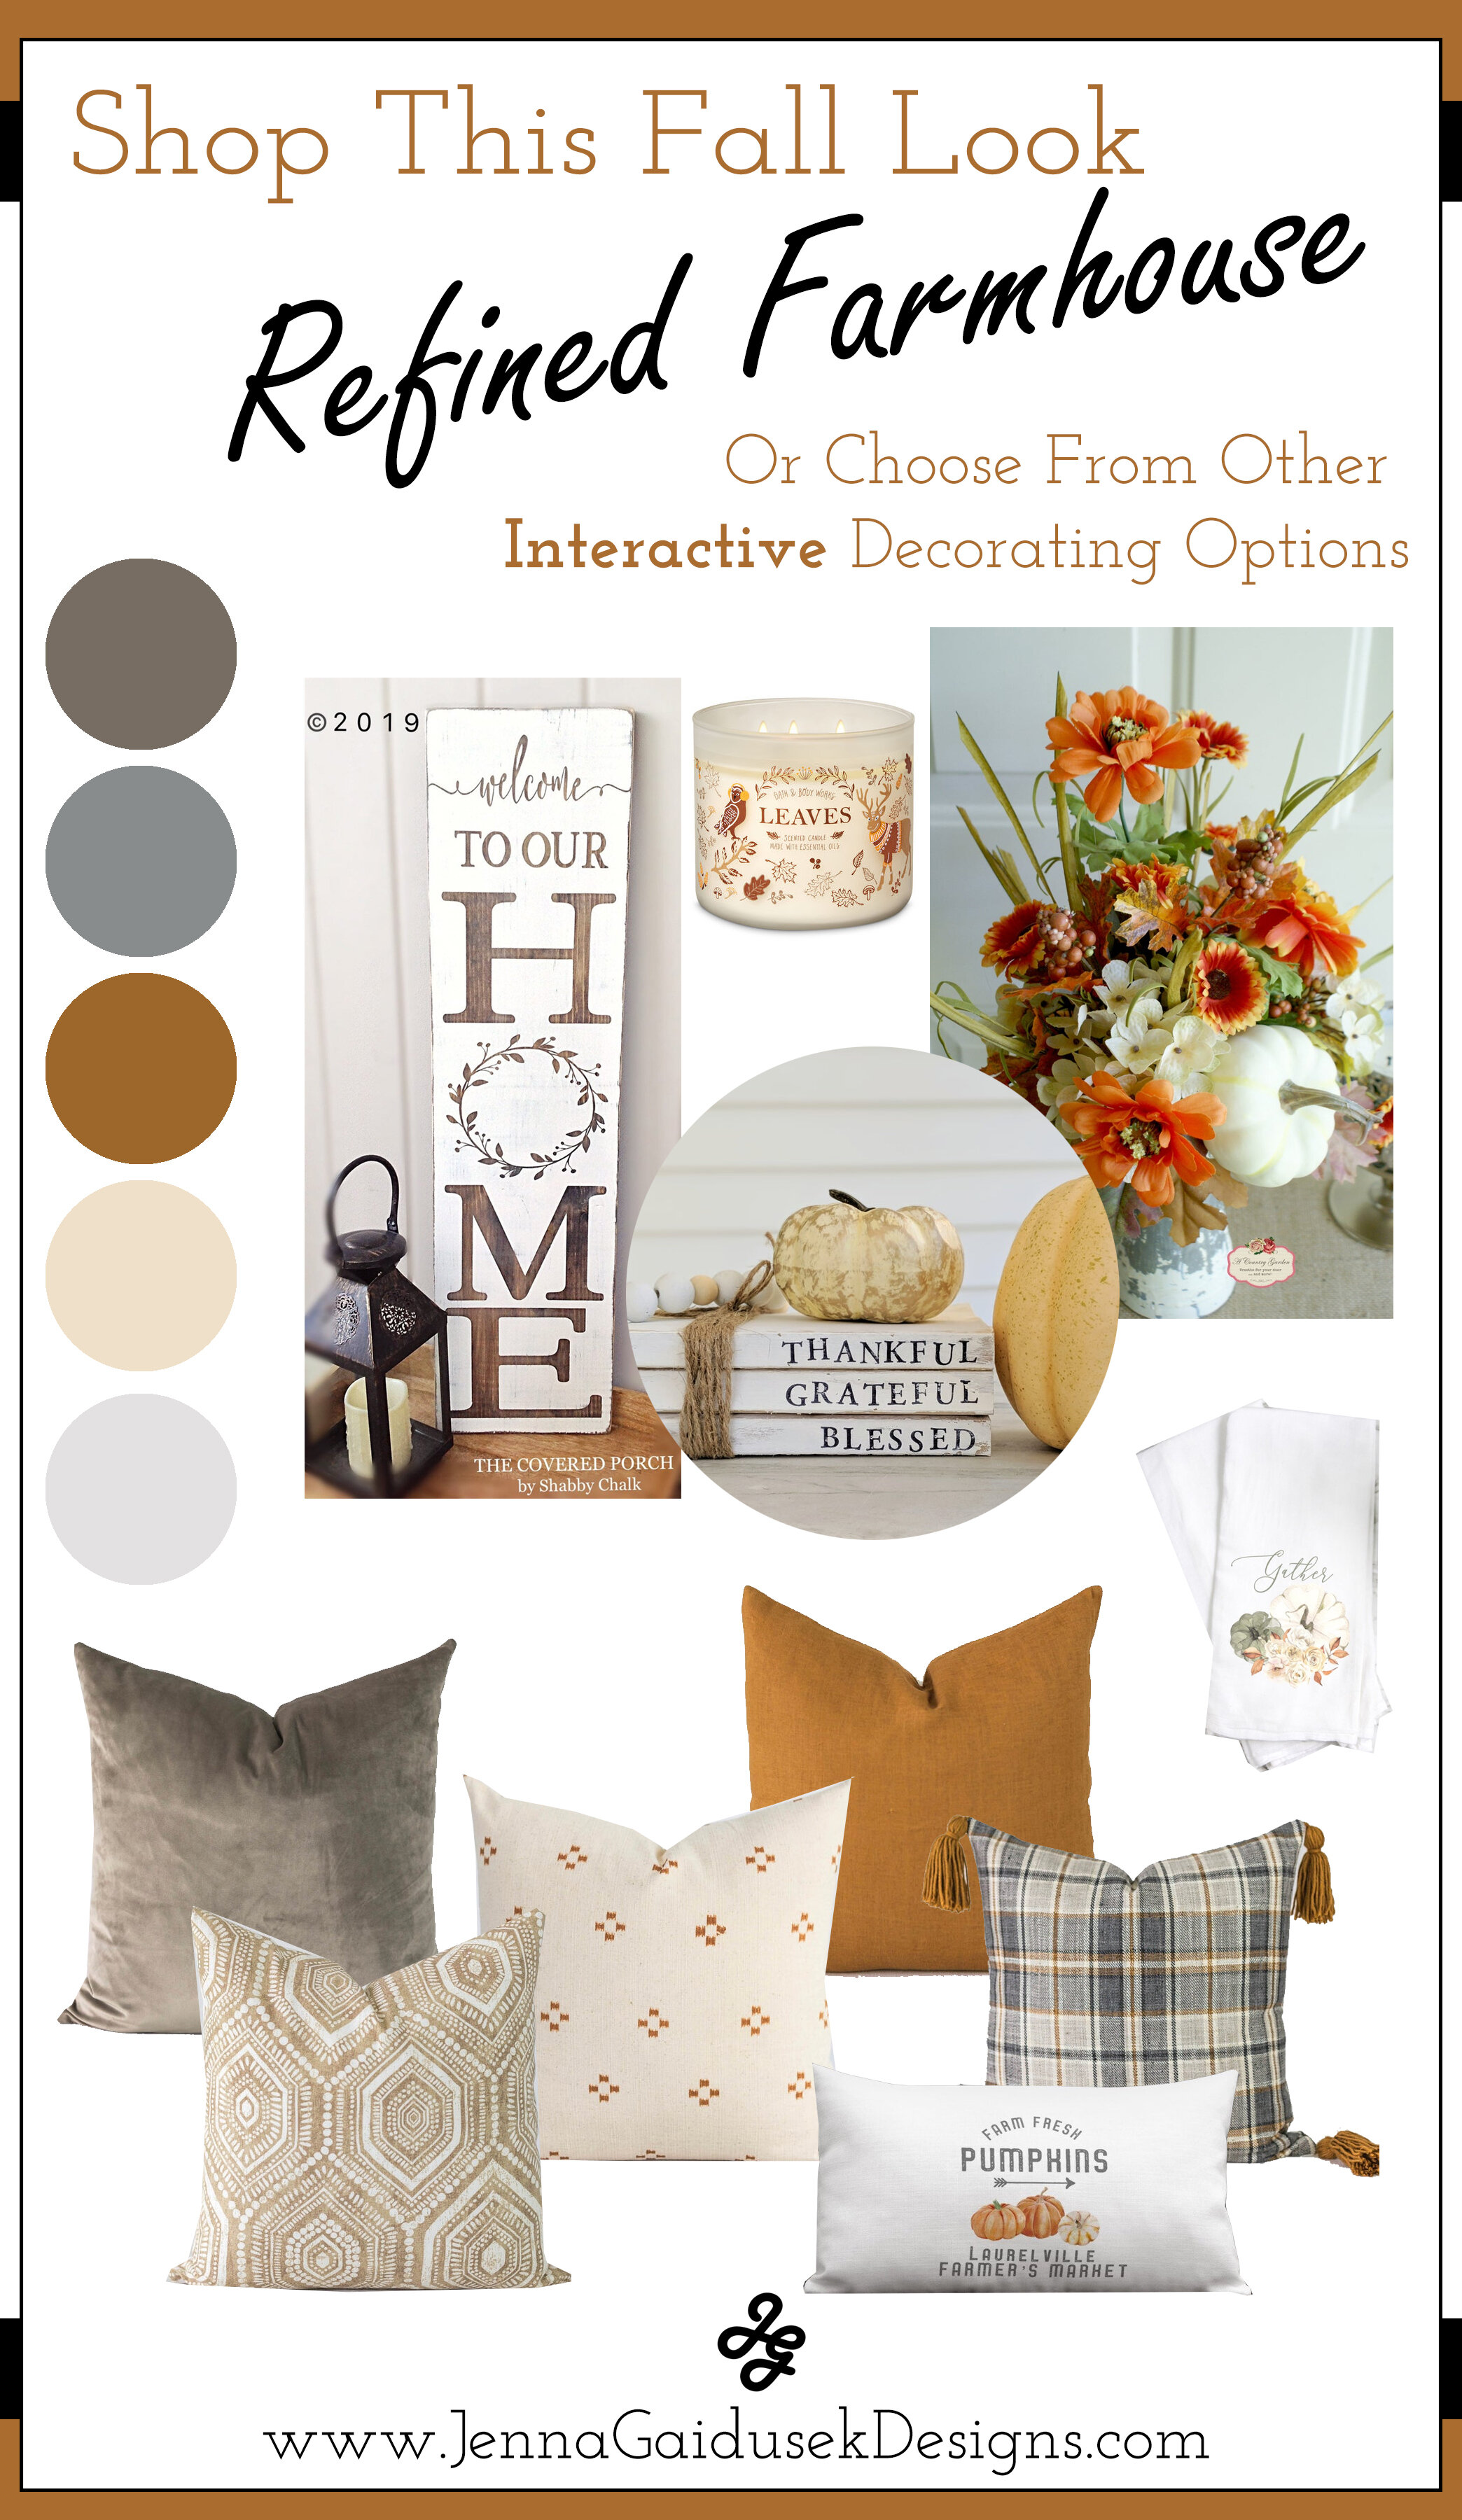 Sophisticated Autumn -Get your free fall decorating style guide! Shop the sophisticated refined farmhouse home decor based on your fall color scheme for this year. Add new pillows, fall wall decor, wood signs and more. All expertly designed by eDesigner, Jenna Gaidusek and sourced from Etsy small businesses. Get ready for entertaining your family and friends this Thanksgiving and Christmas season with these fresh fall decor styles! #modernfarmhouse #falldecor #decorateforfall #fallstyle